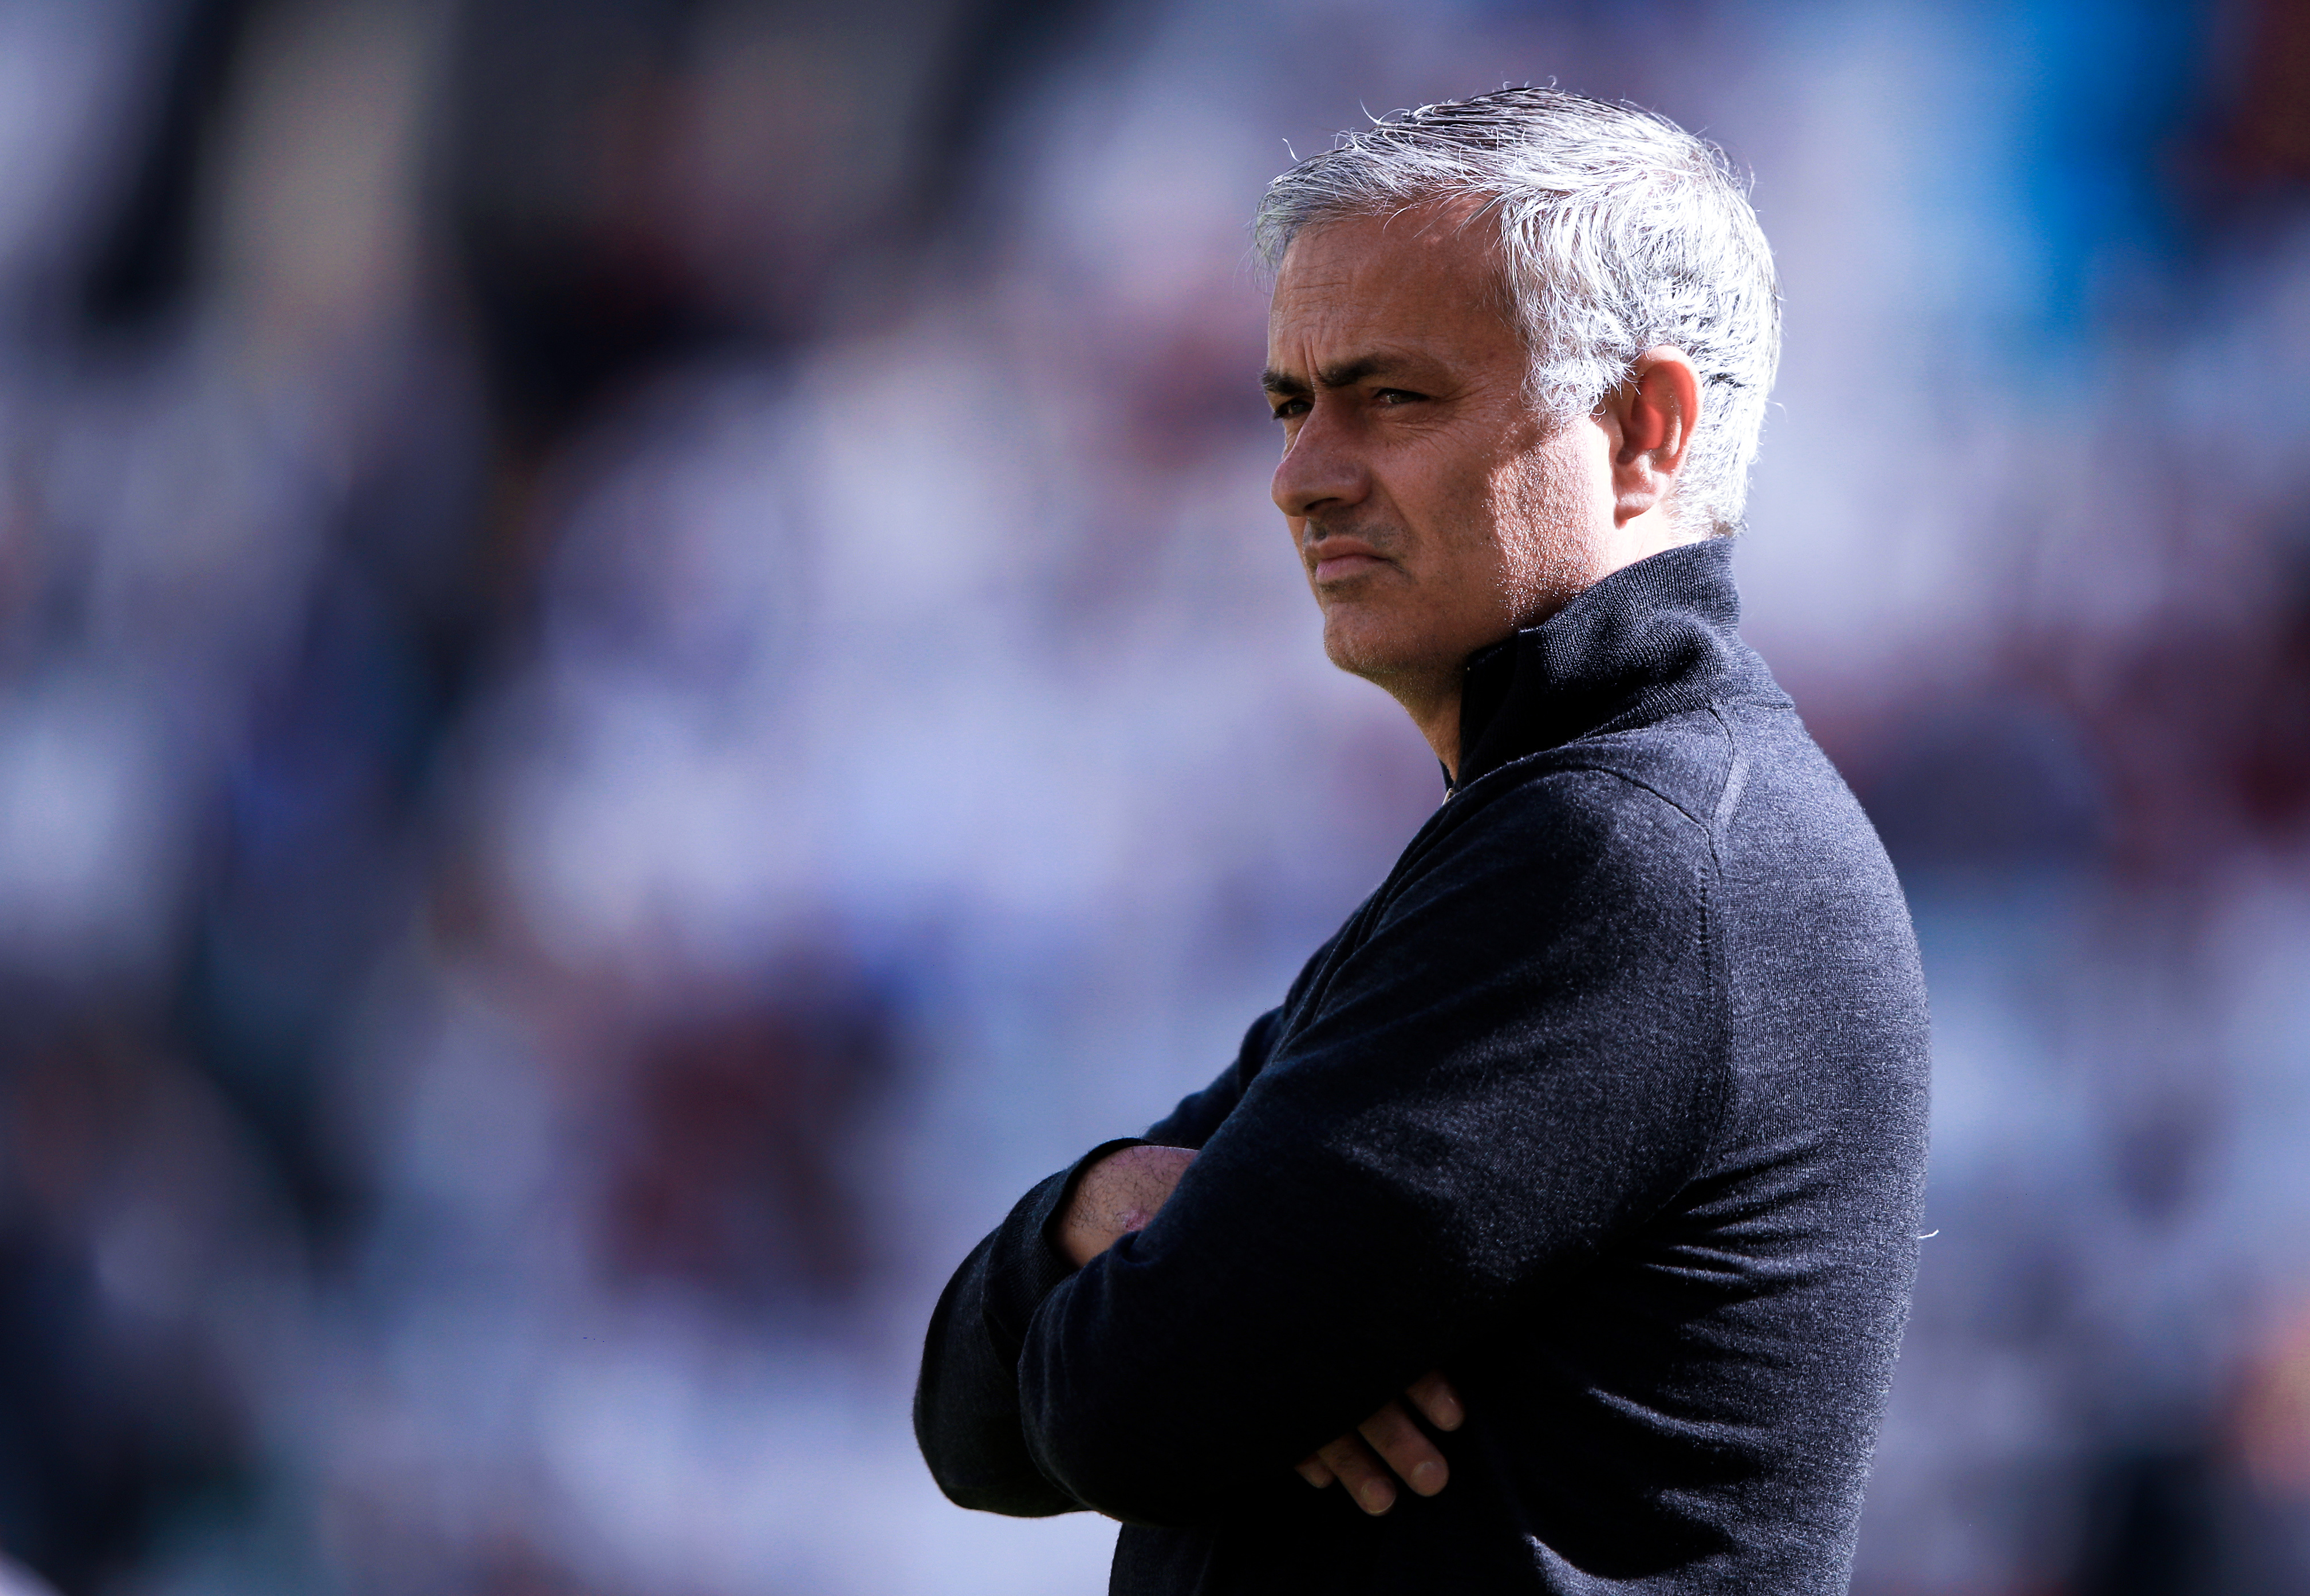 aed9e6a9d The demise of José Mourinho  a six-year journey of feuds